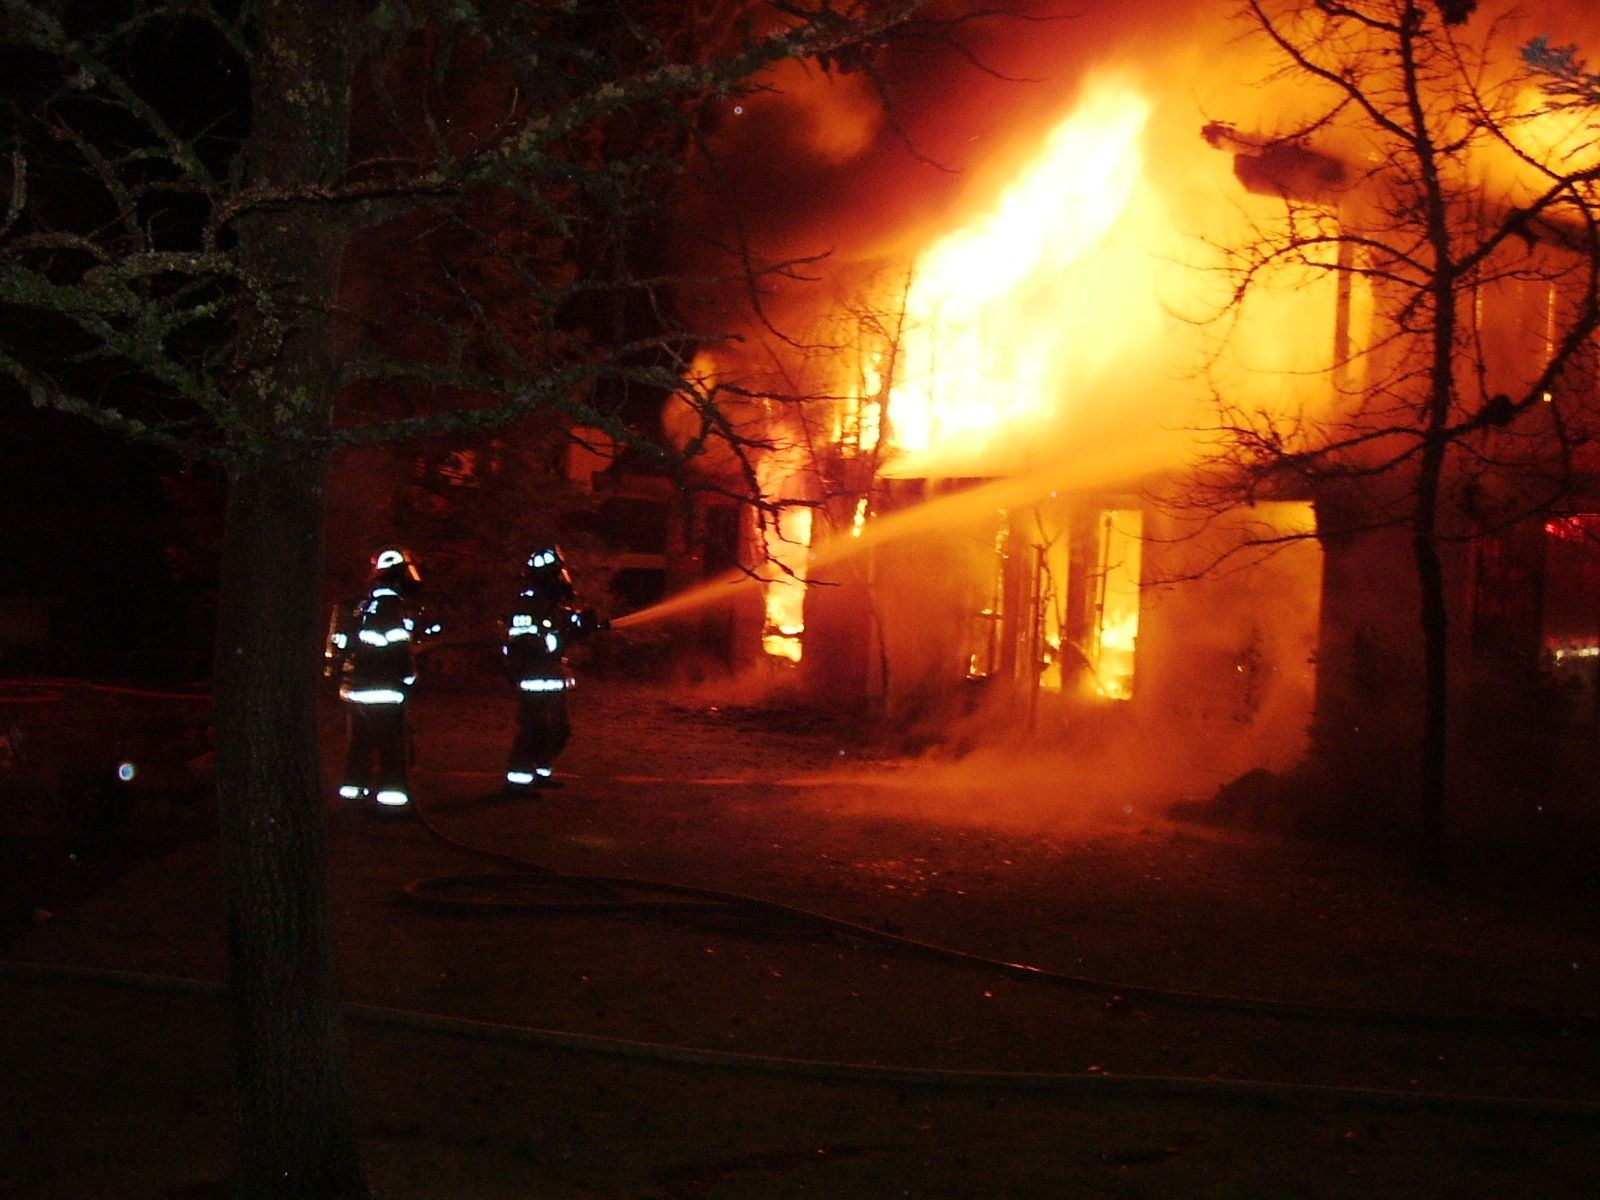 Stucture fire 012.jpg